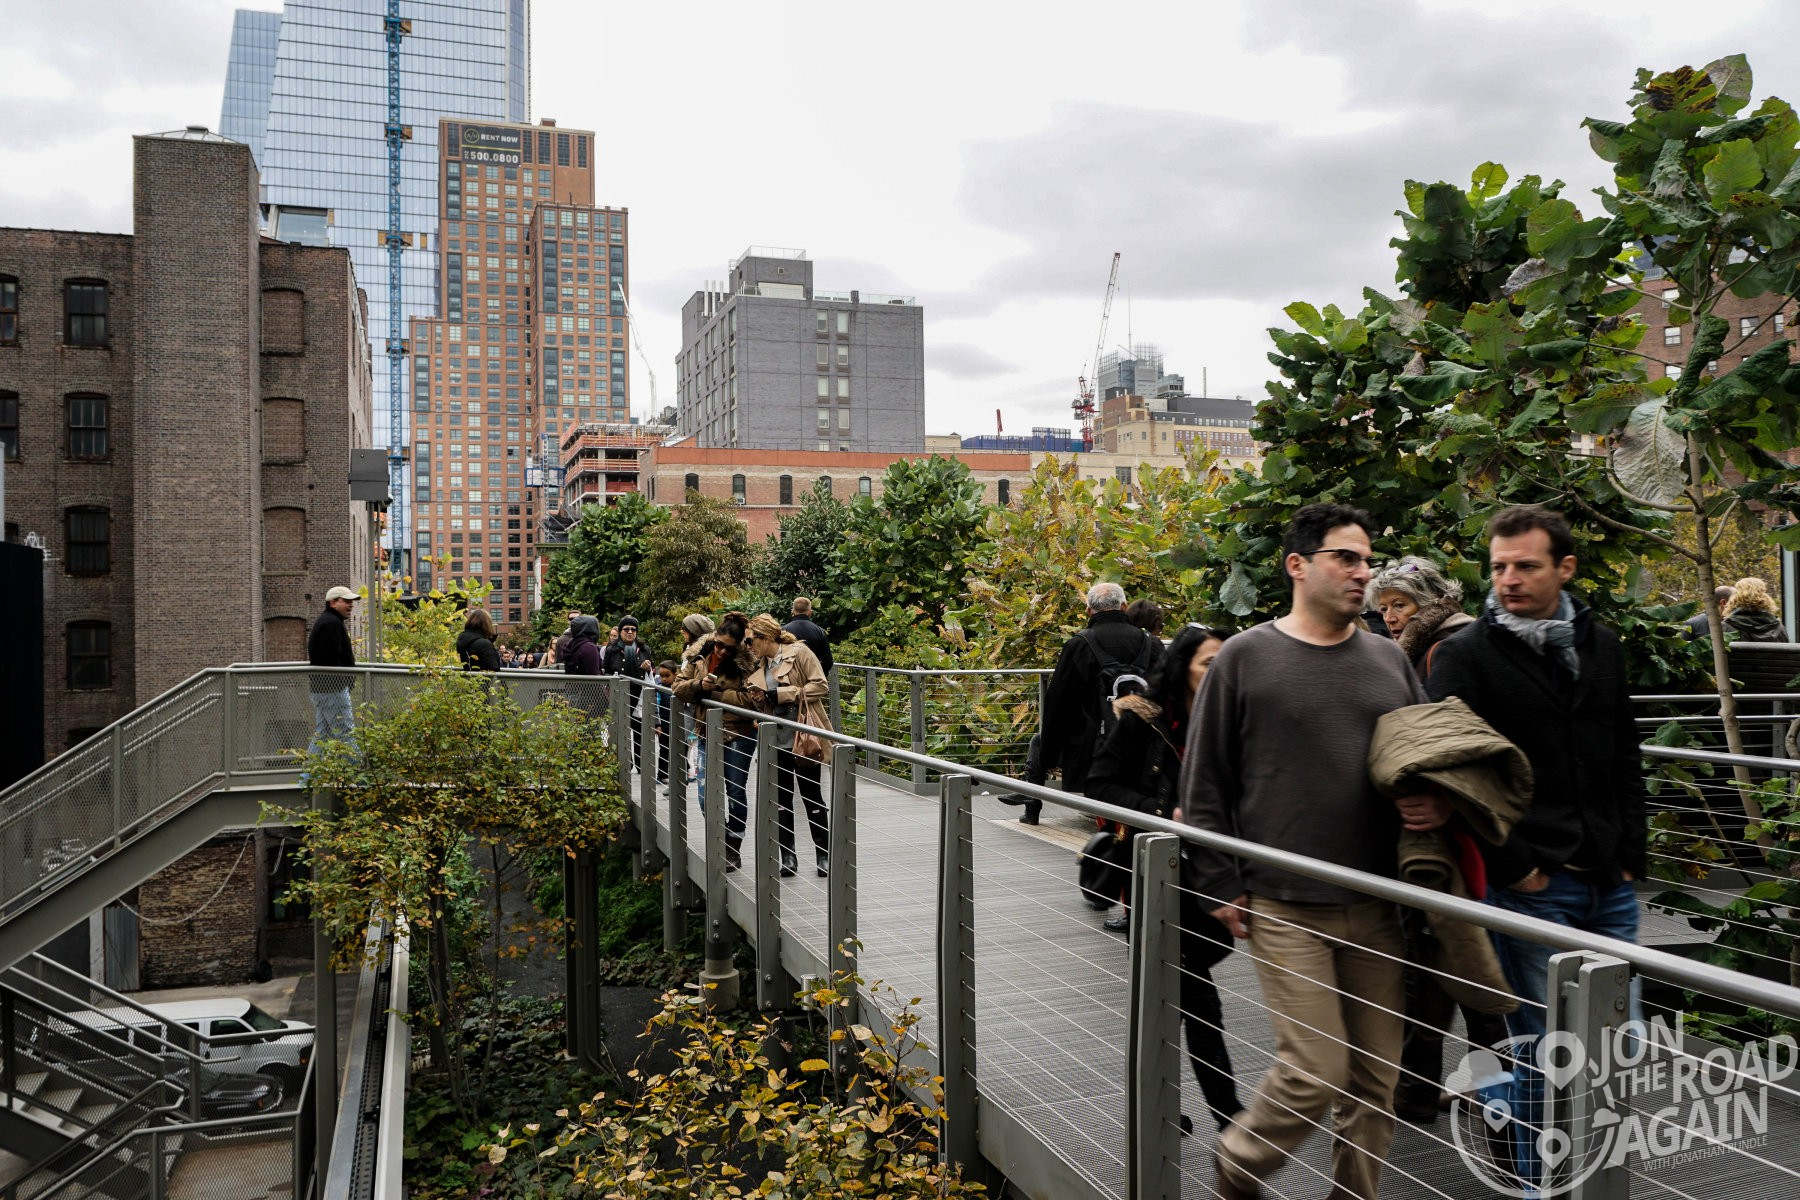 Strolling the high line